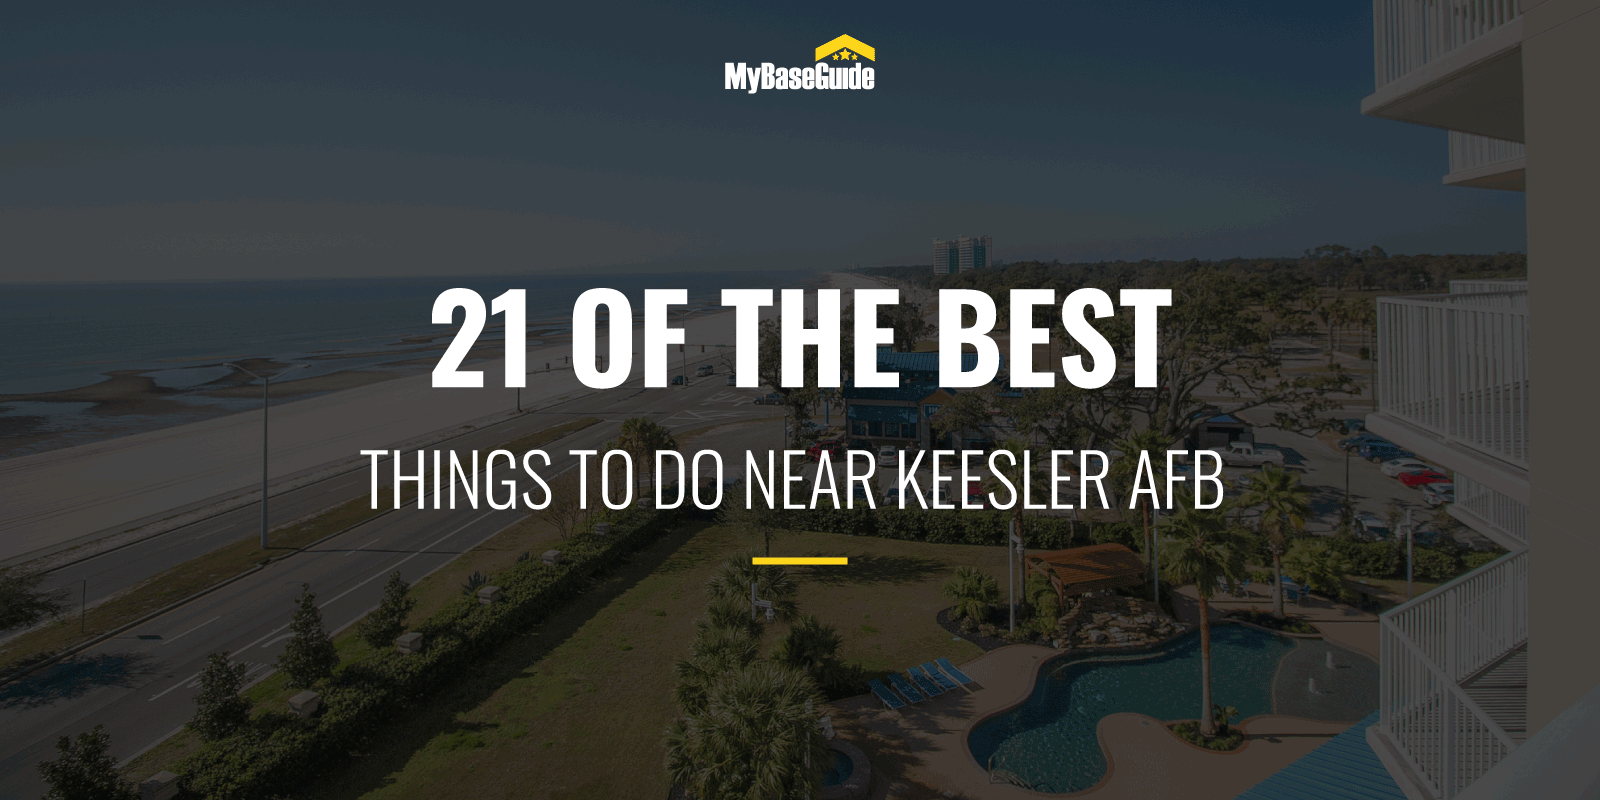 21 Of the Best Things to Do Near Keesler AFB